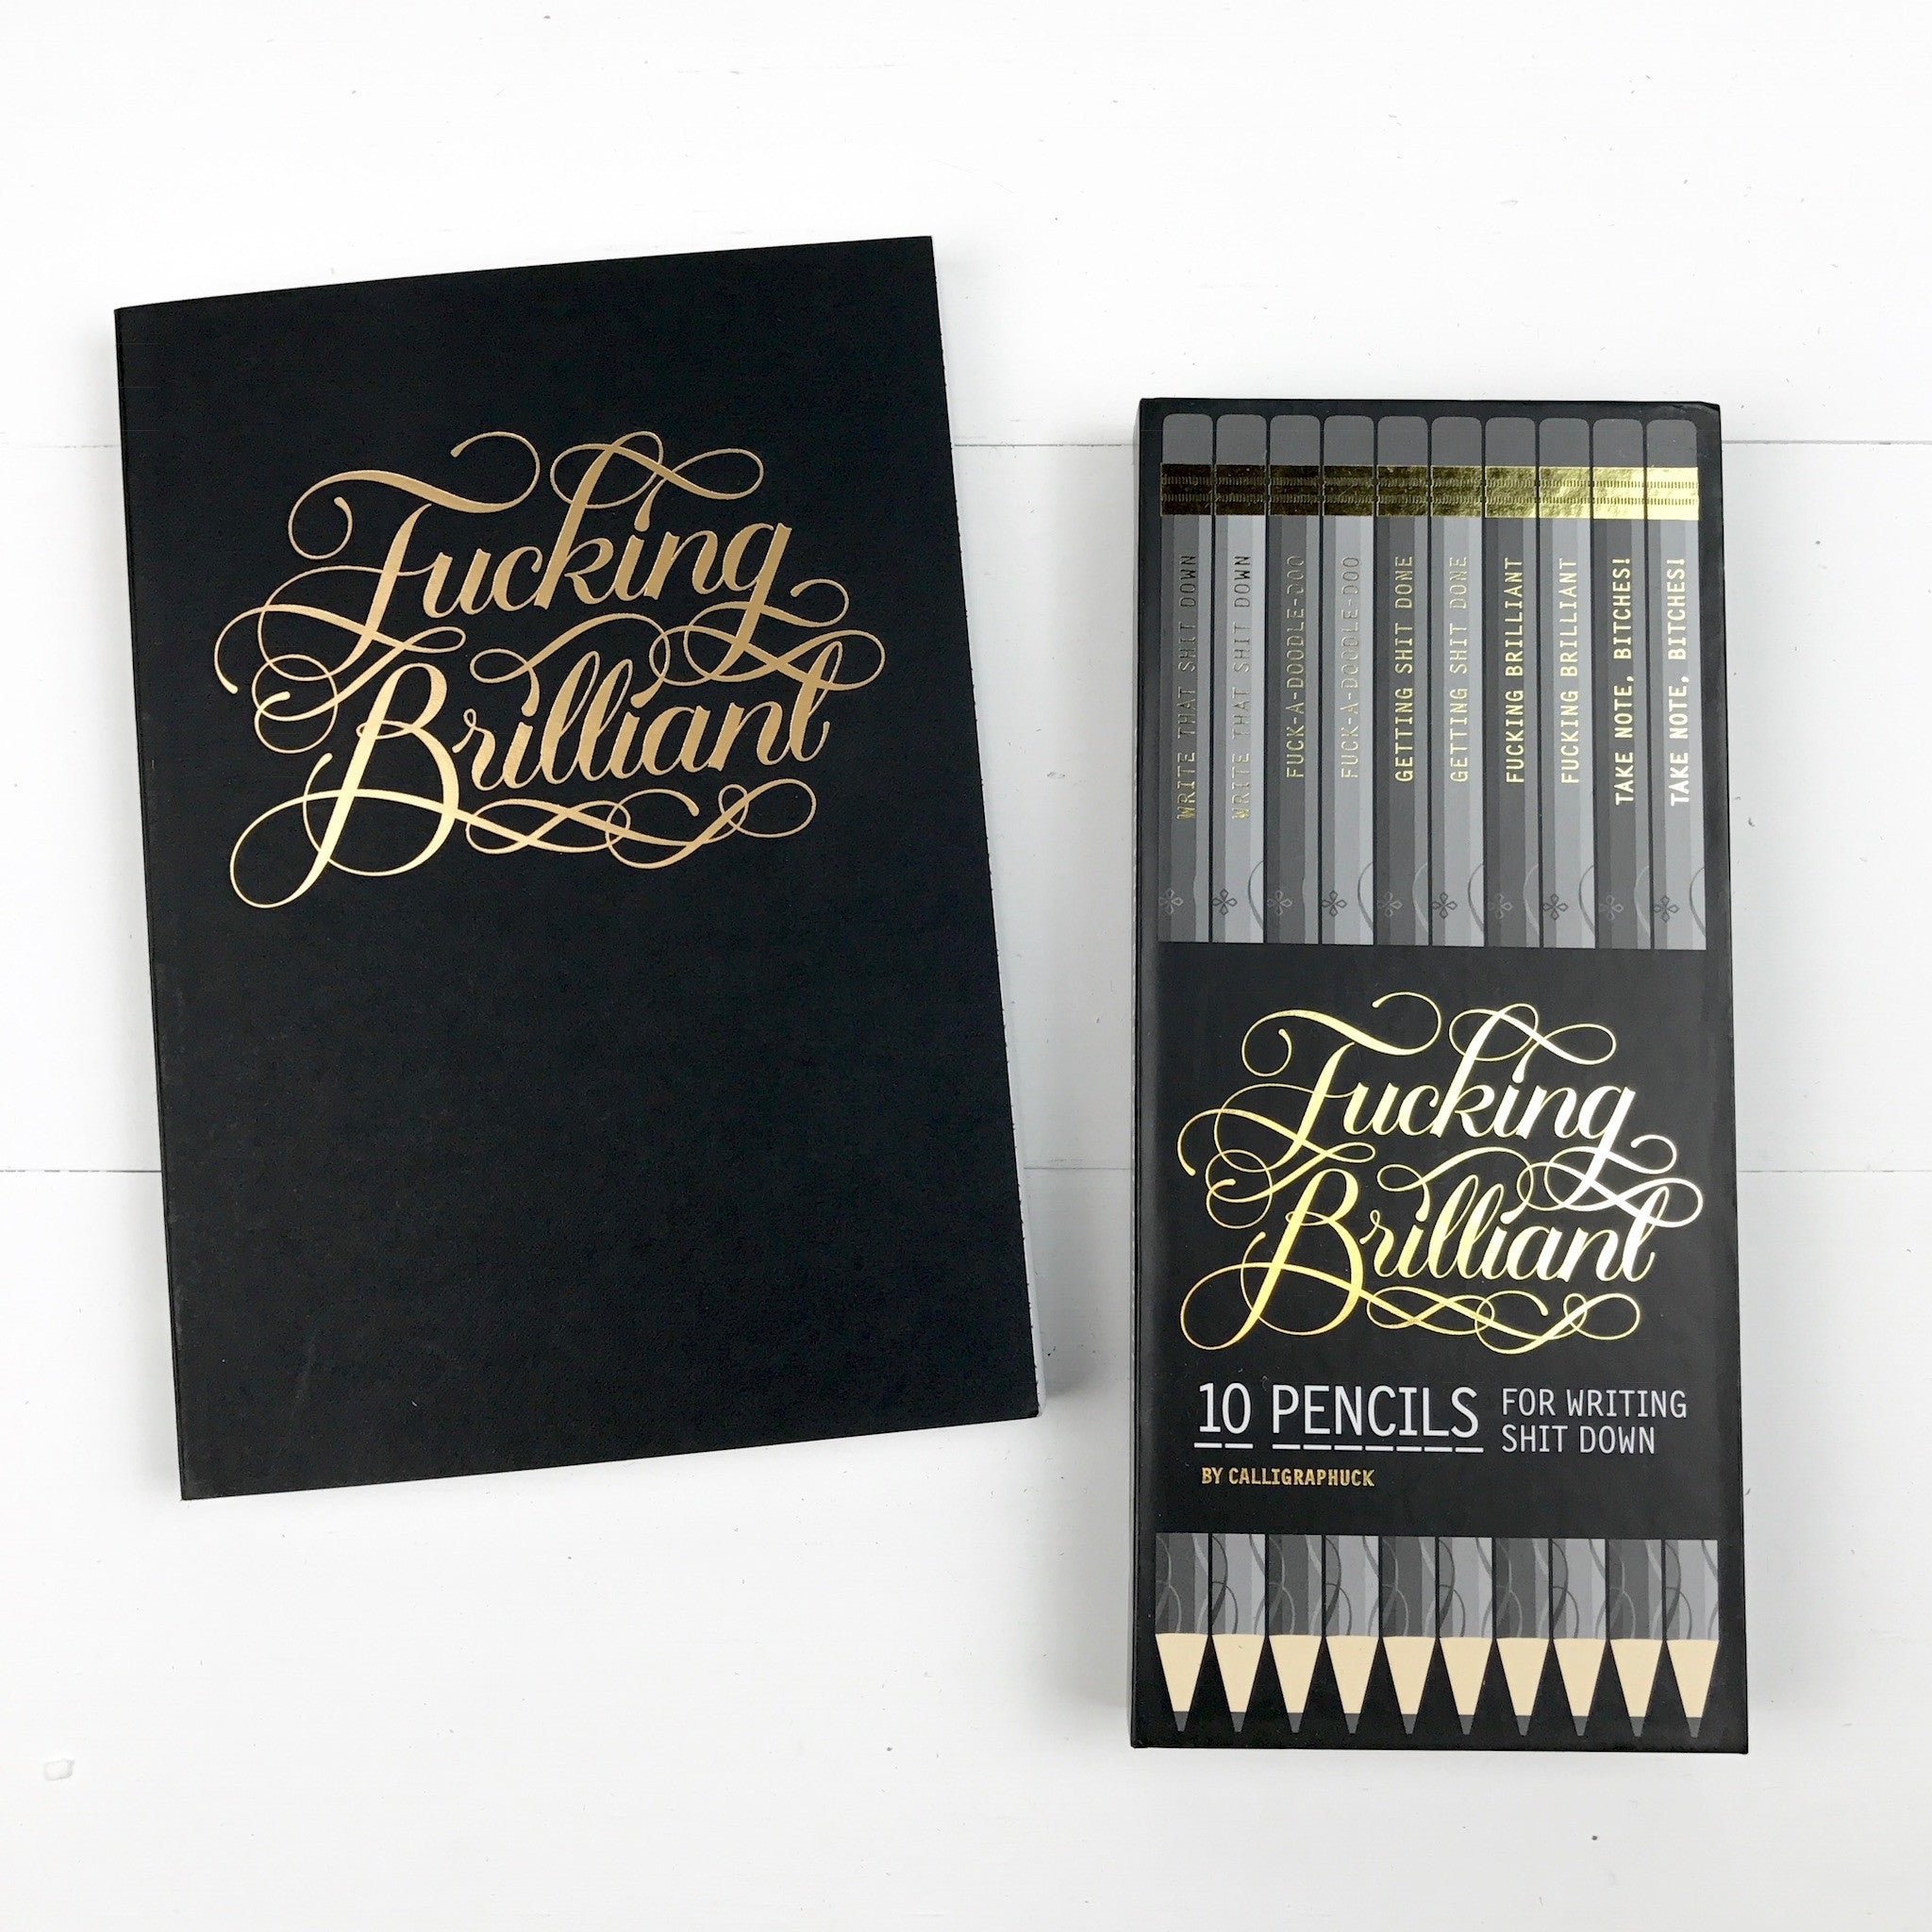 F***ing Brilliant Pencils